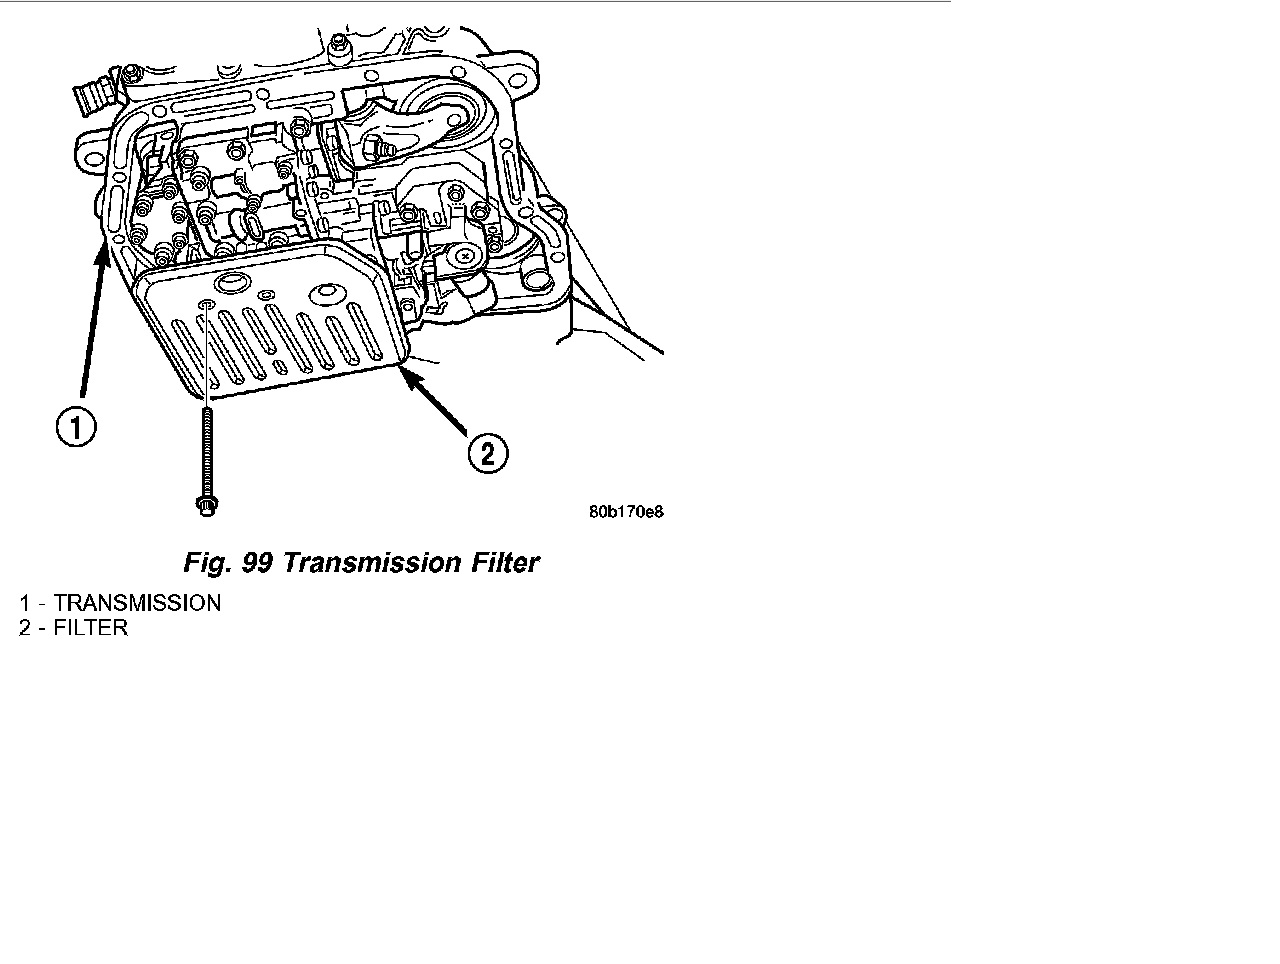 2012 Jeep Unlimited Bandit   Wiring Diagram Database Bandit Trailer Hitch Pin Wiring Diagram on